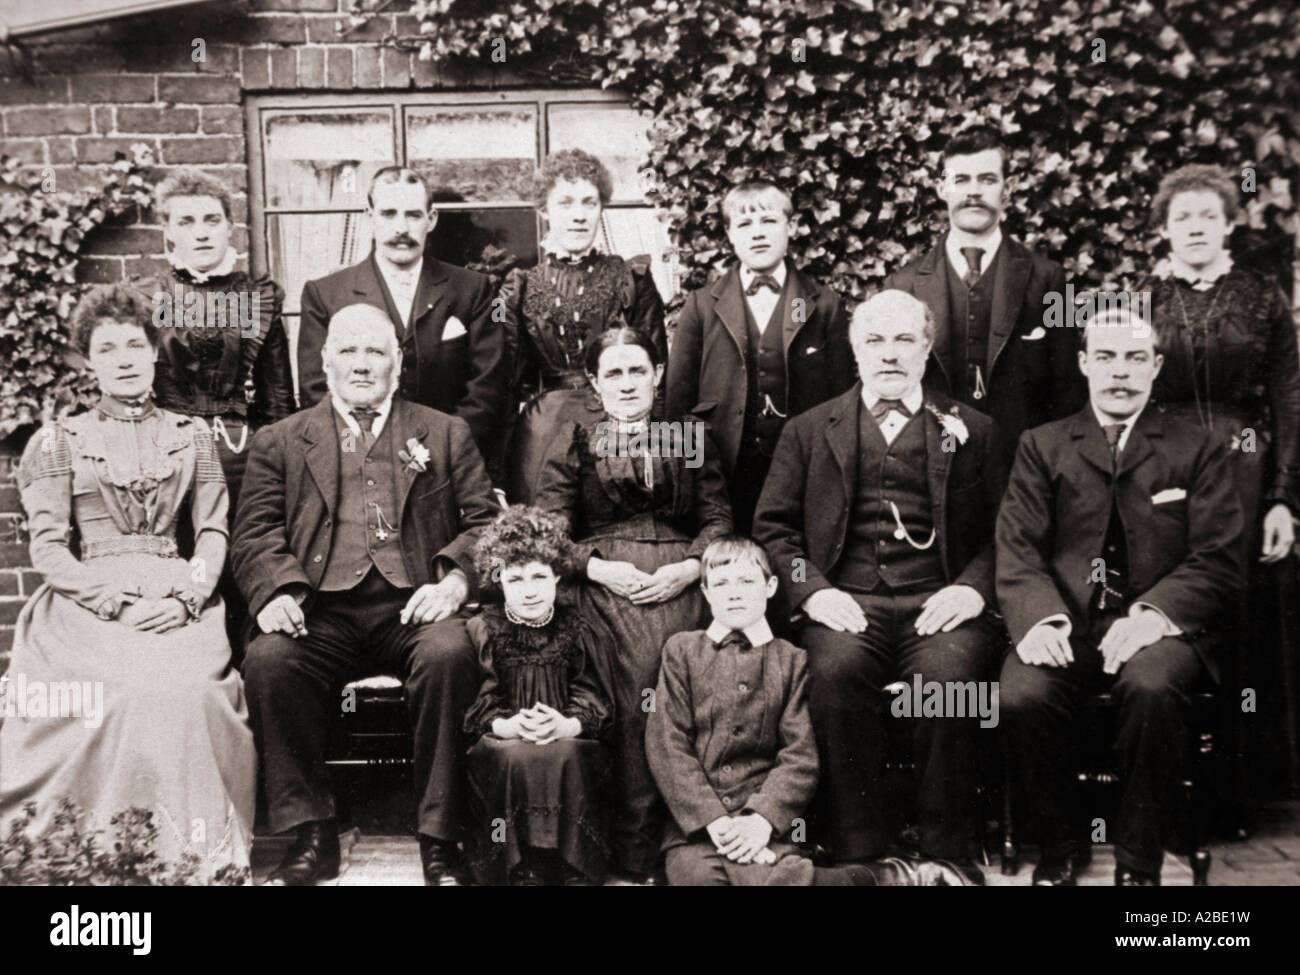 A Family Photograph late 1890s - Stock Image